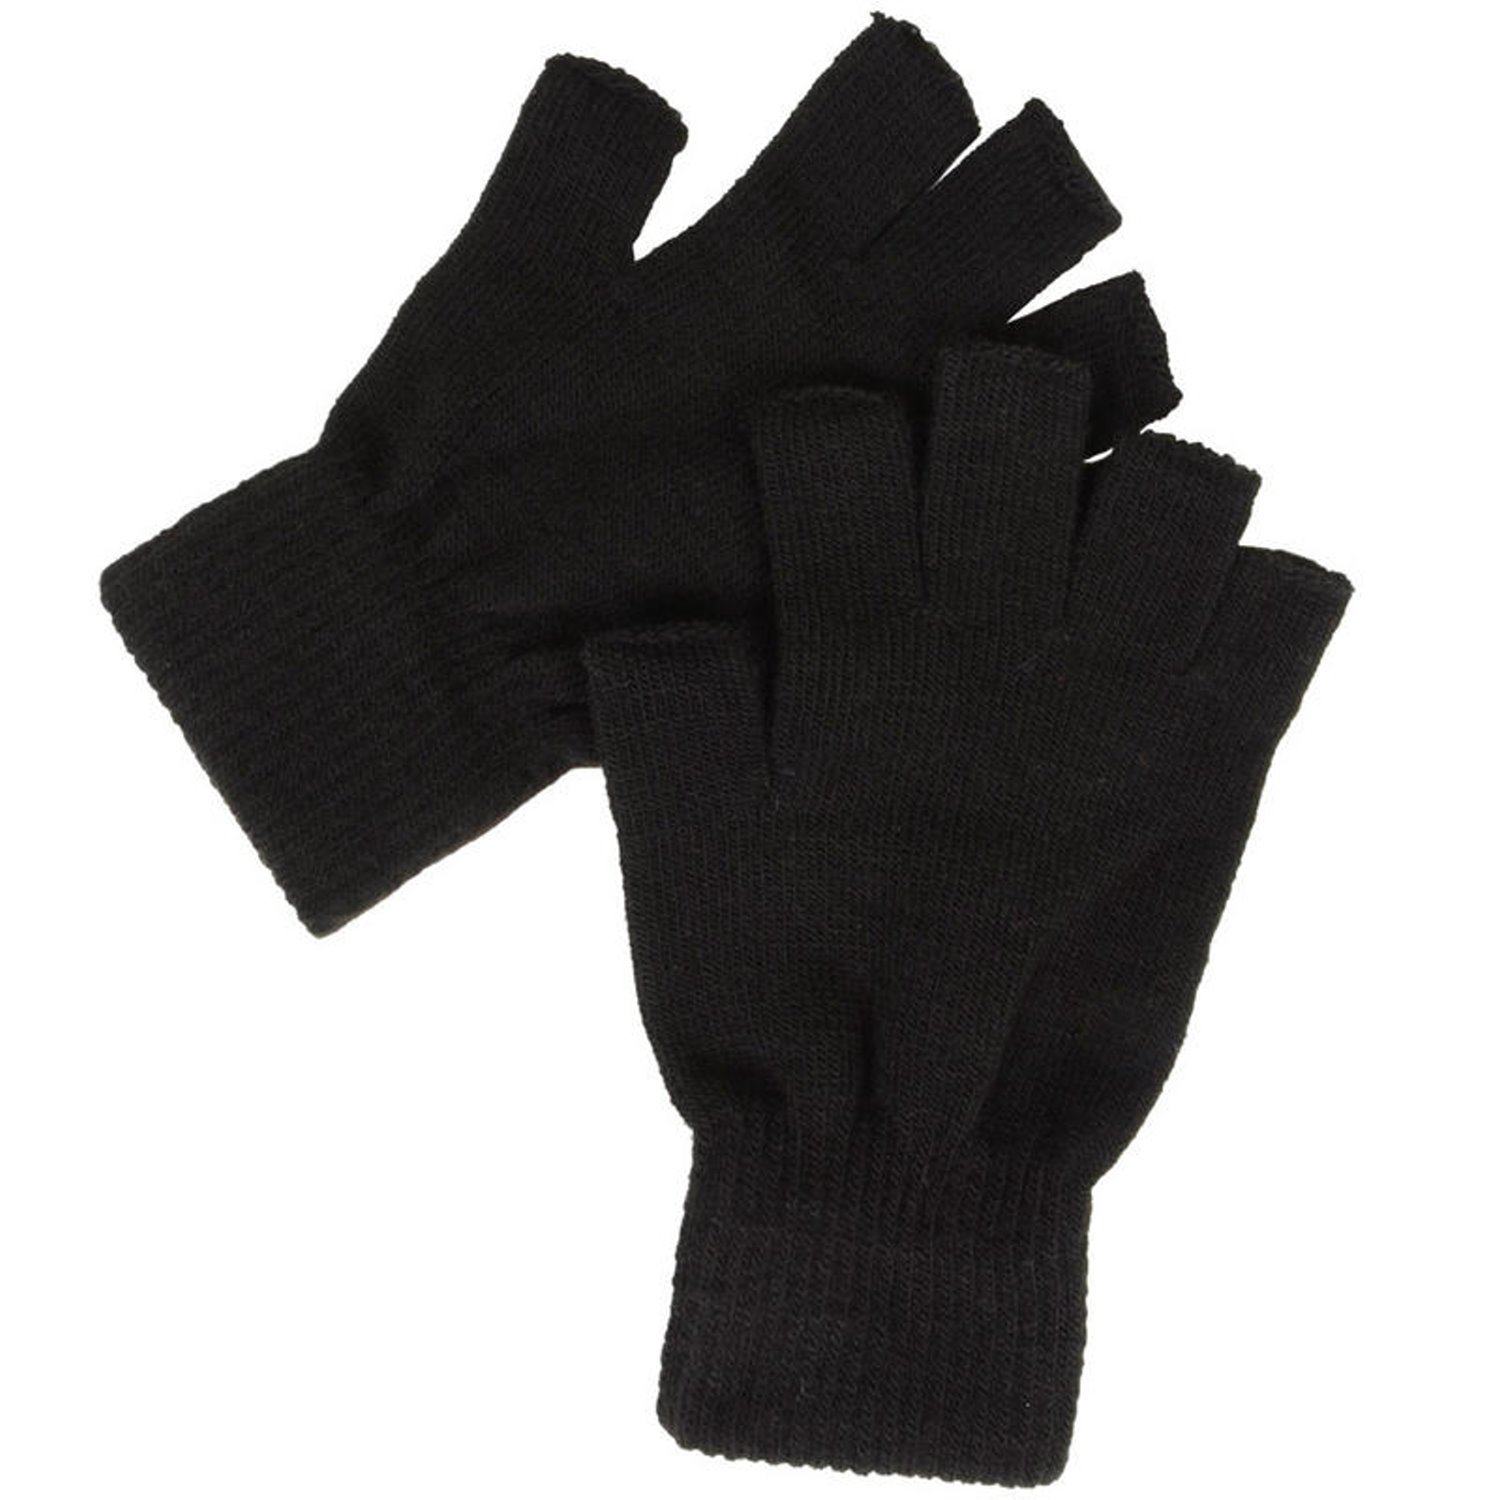 How are gloves without fingers